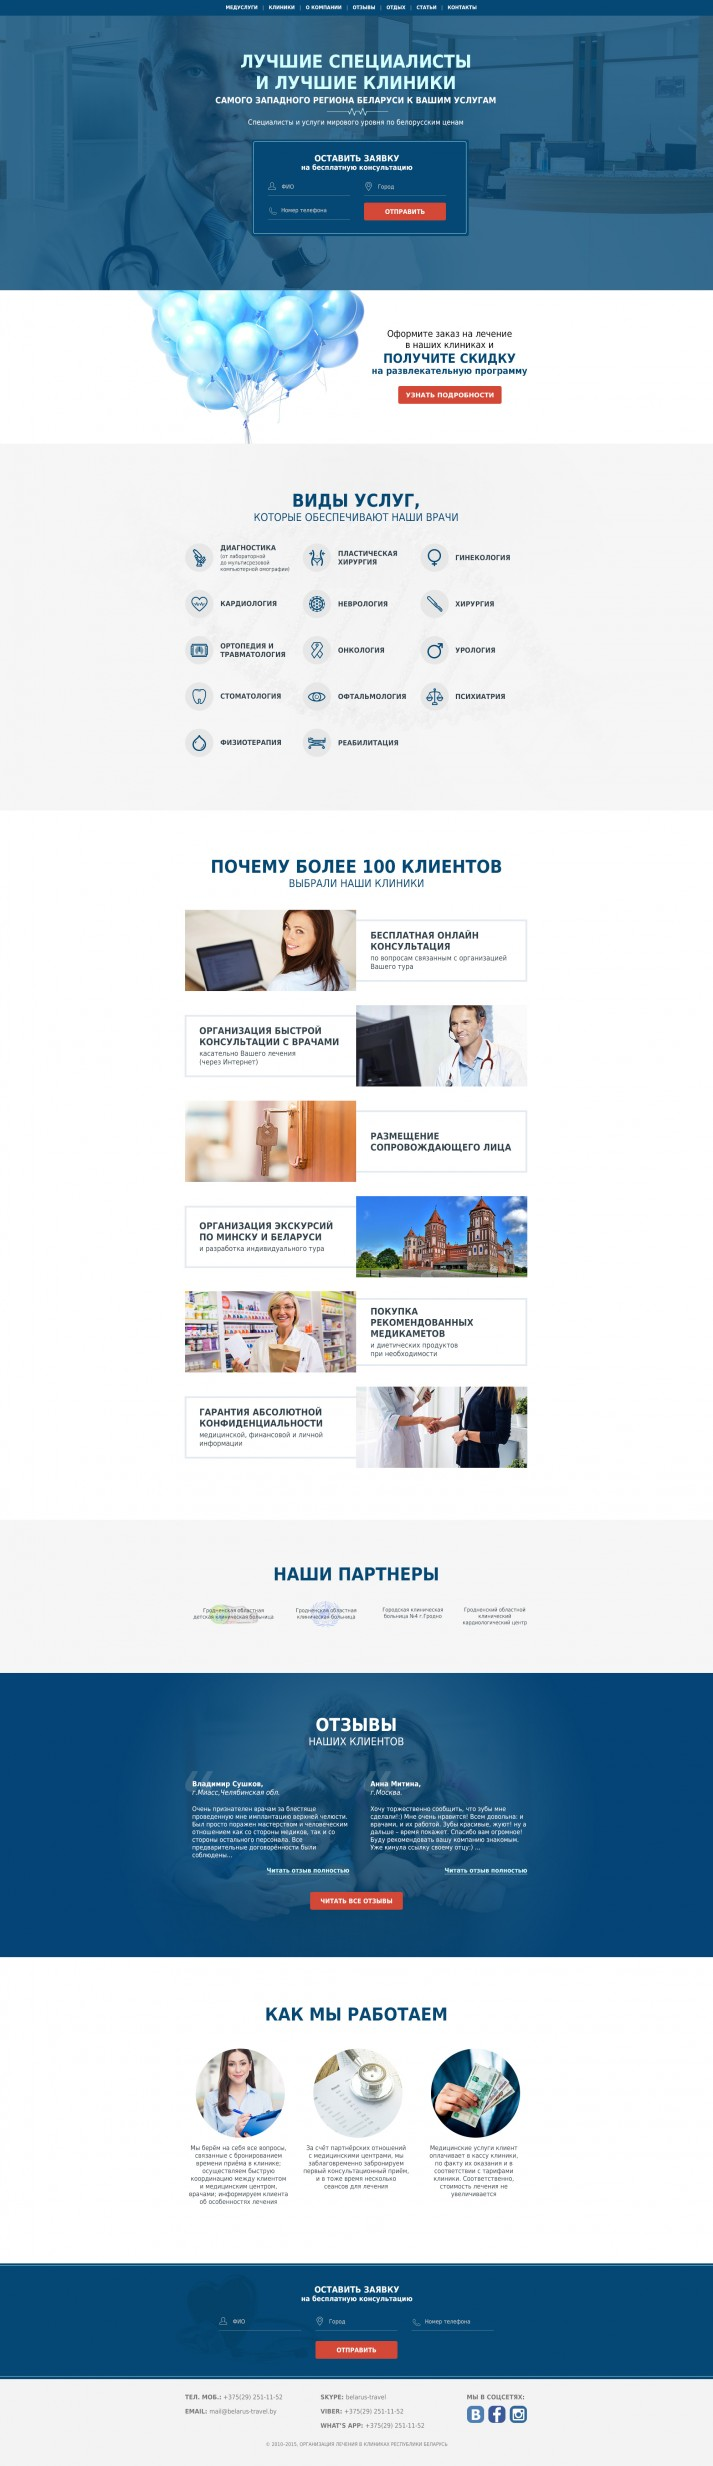 Landing Page Медицина